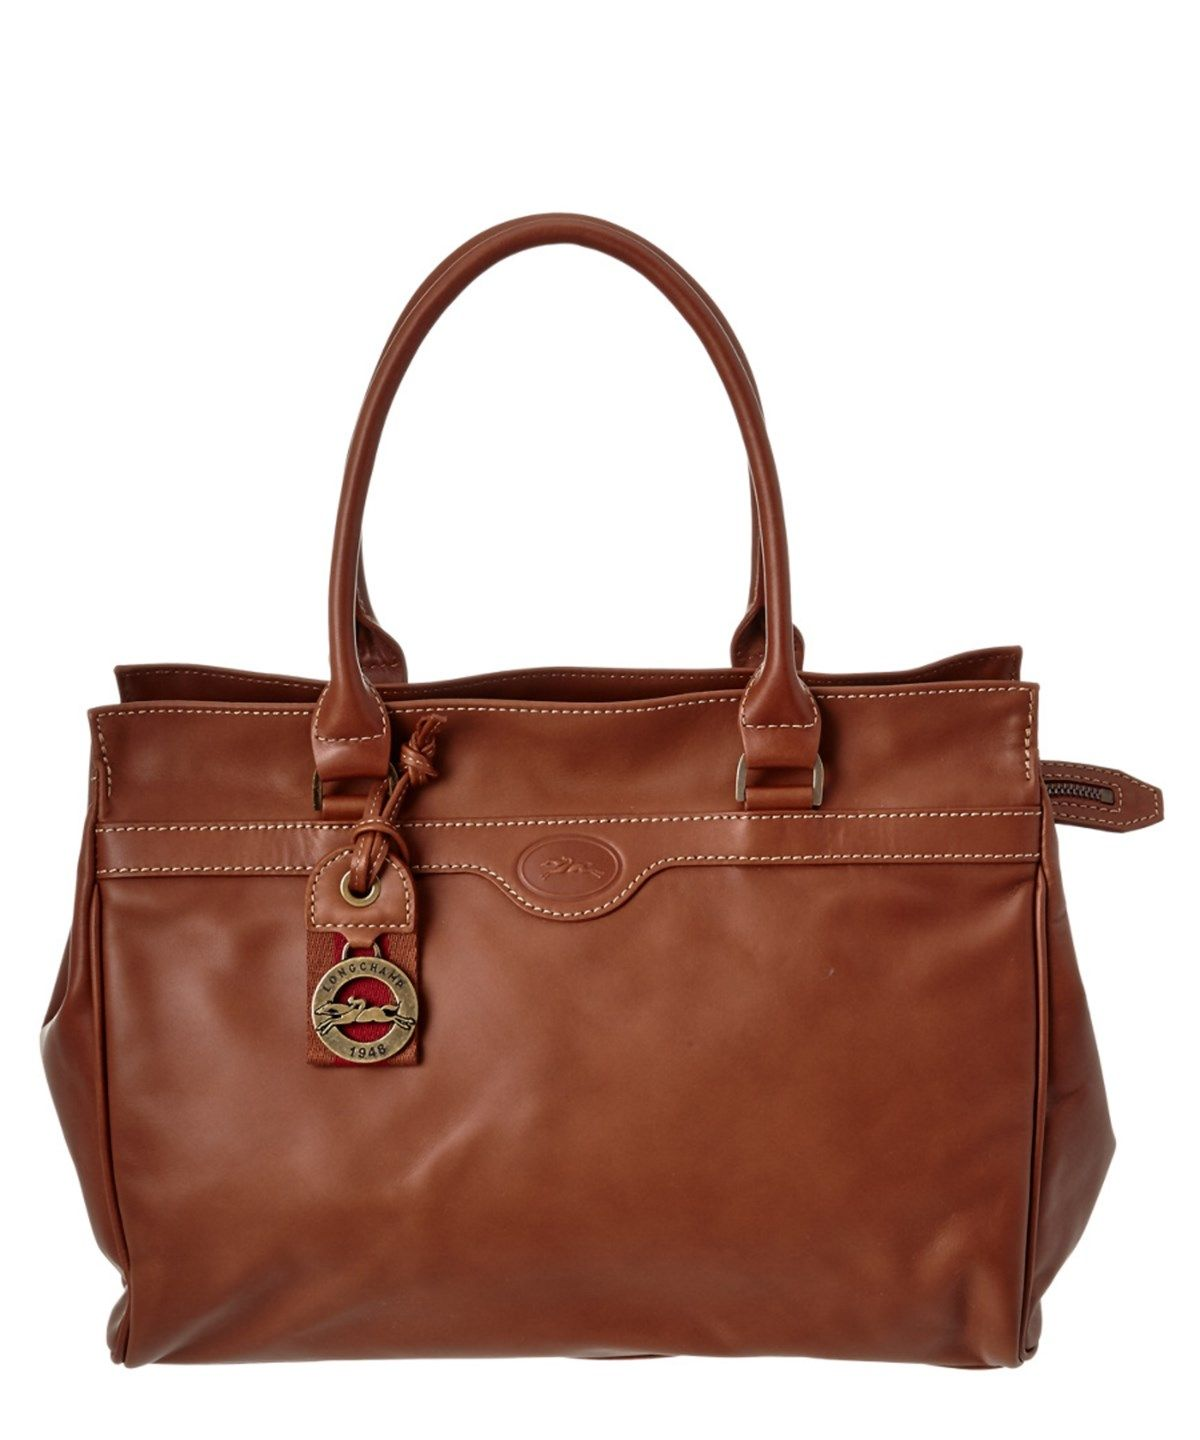 335c5fa13190 LONGCHAMP Longchamp Leather Satchel .  longchamp  bags  leather  hand bags   satchel  lining